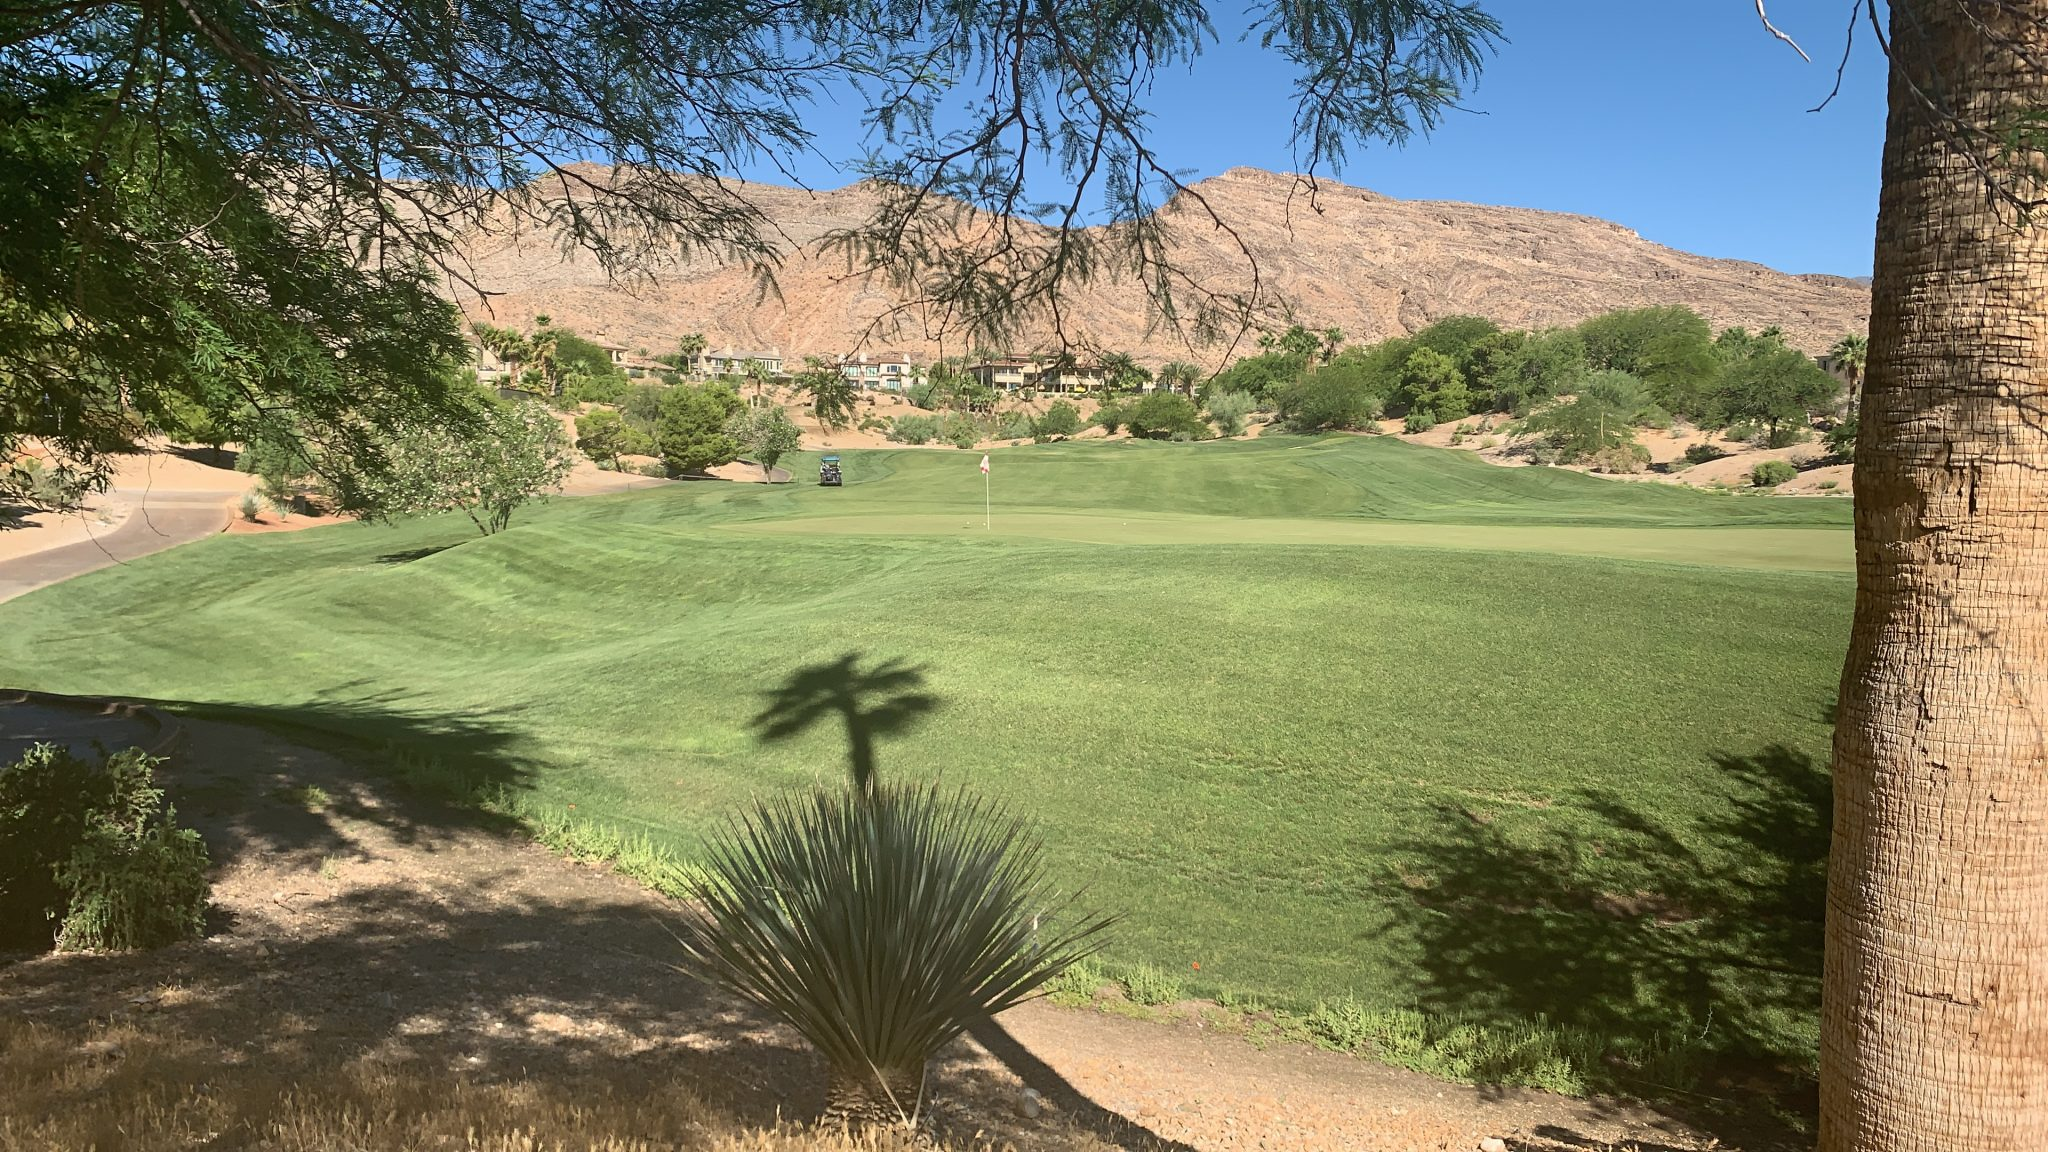 Arroyo Golf Course